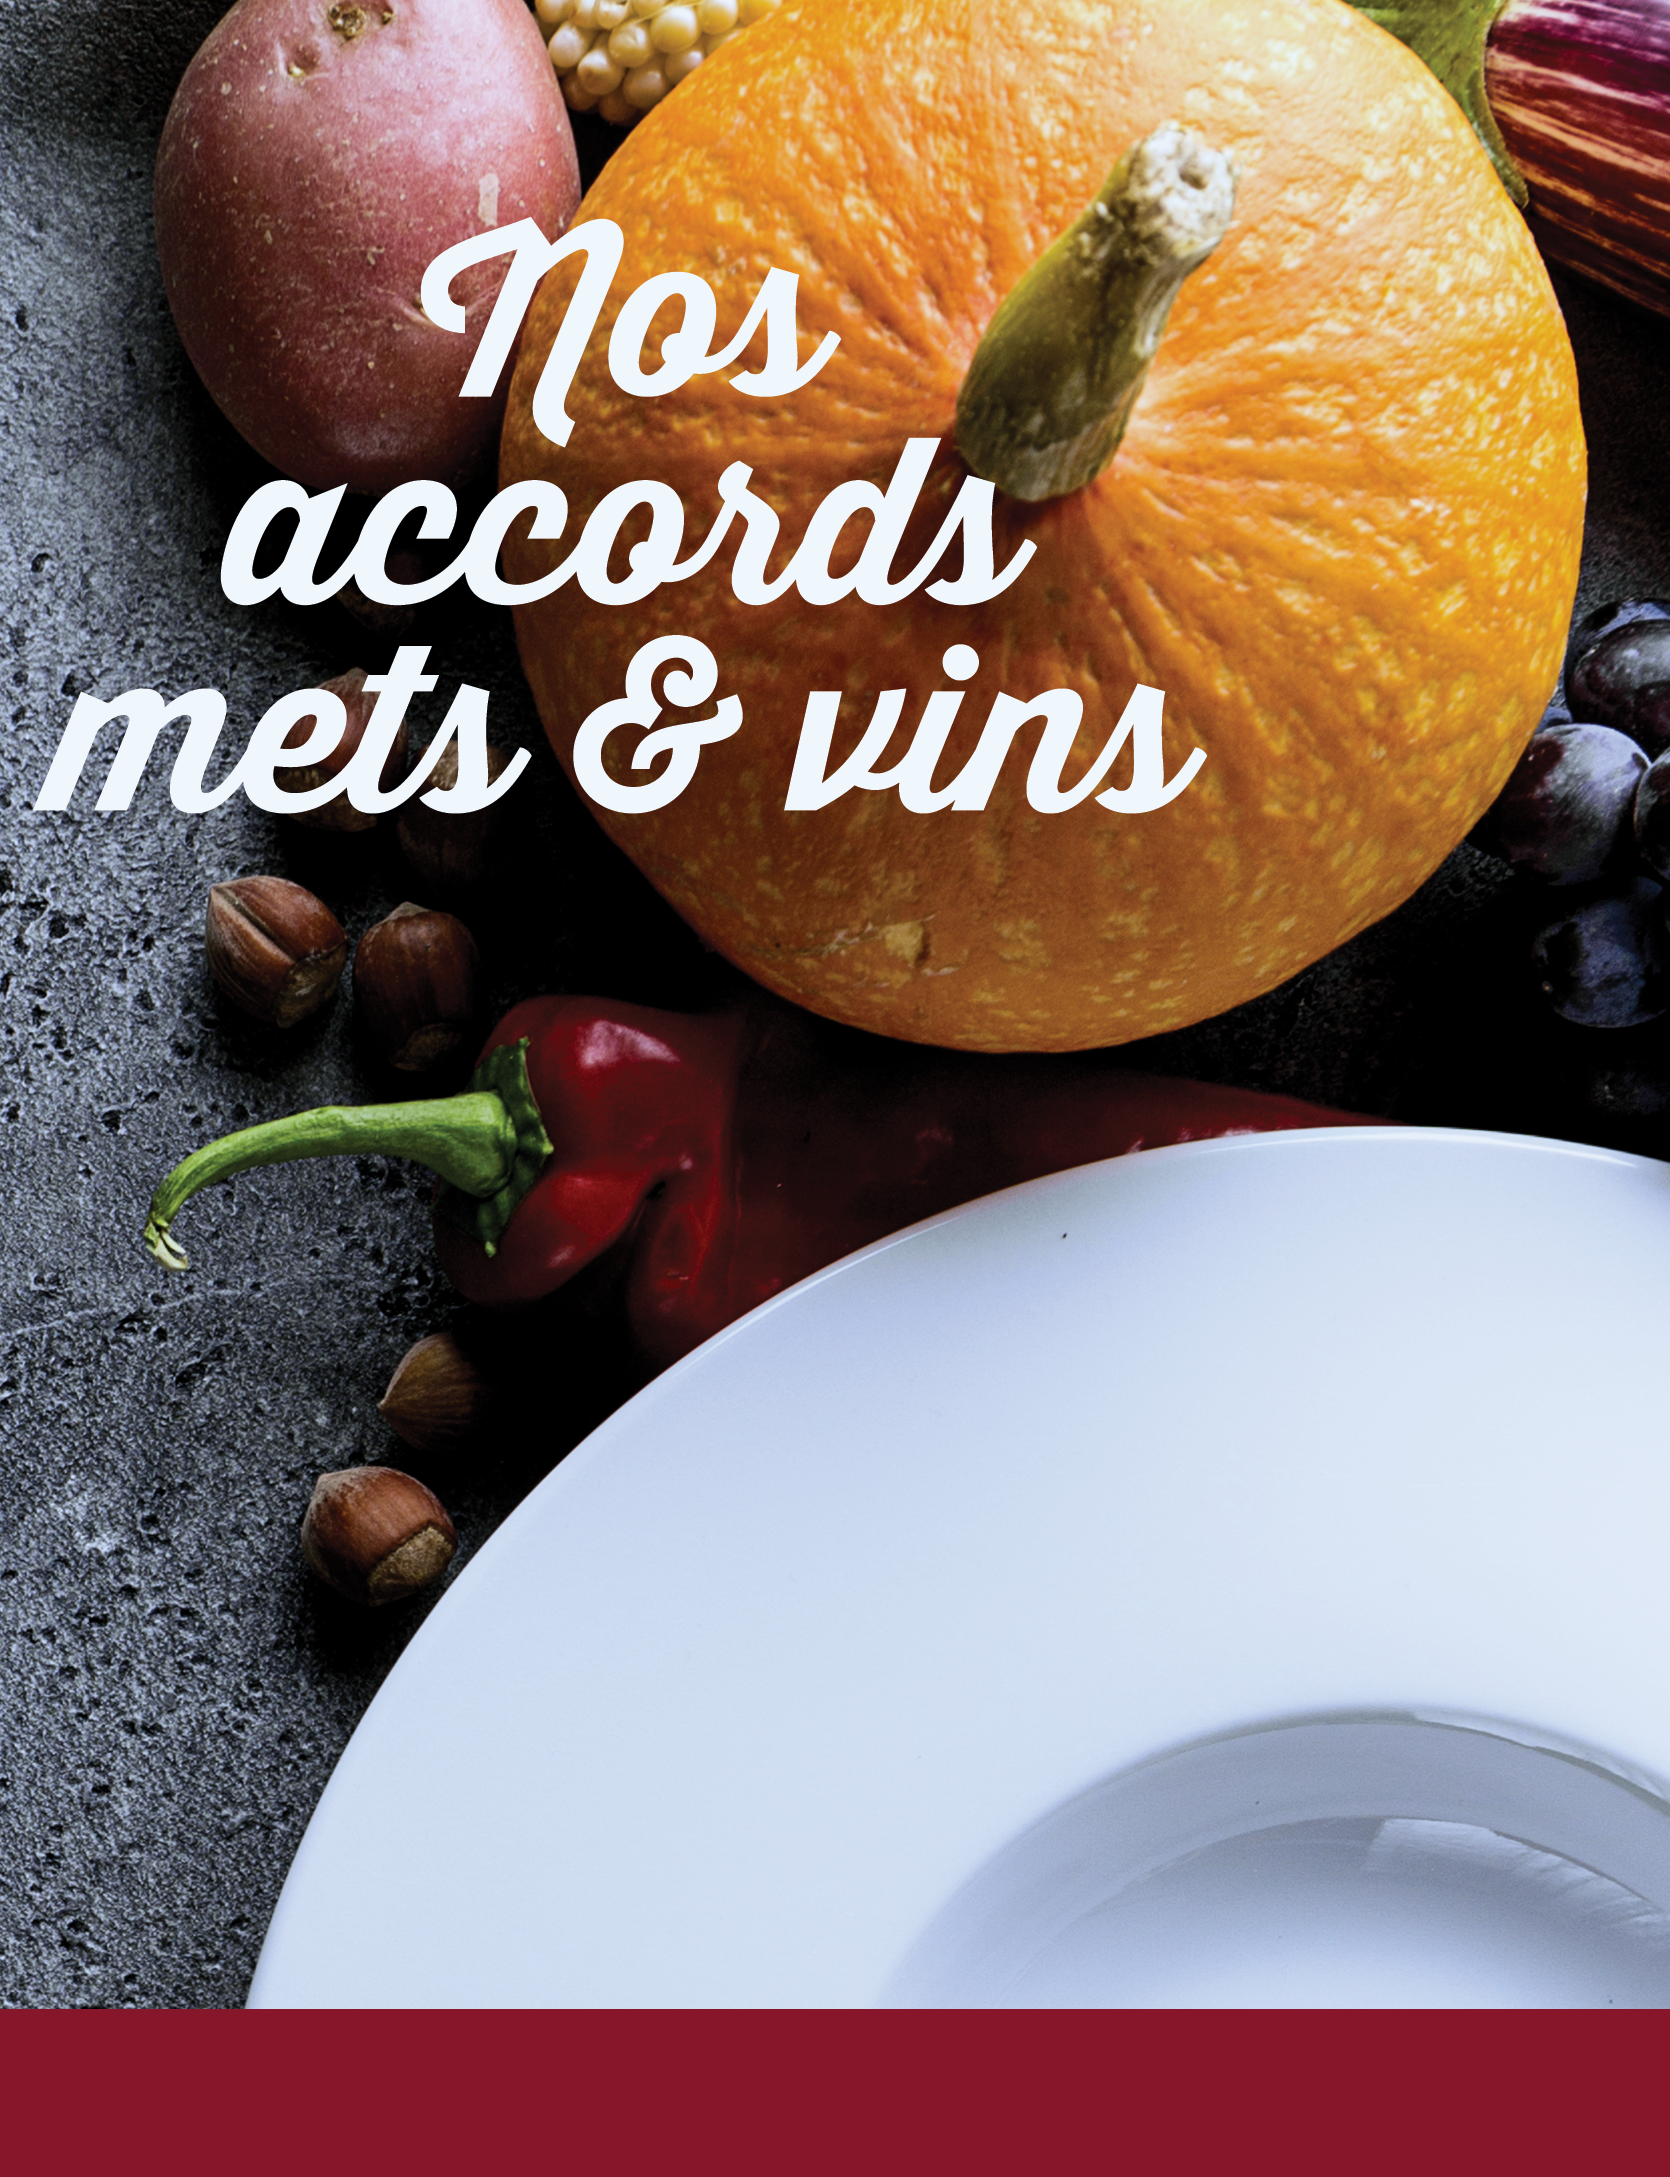 Nos accords met et vin